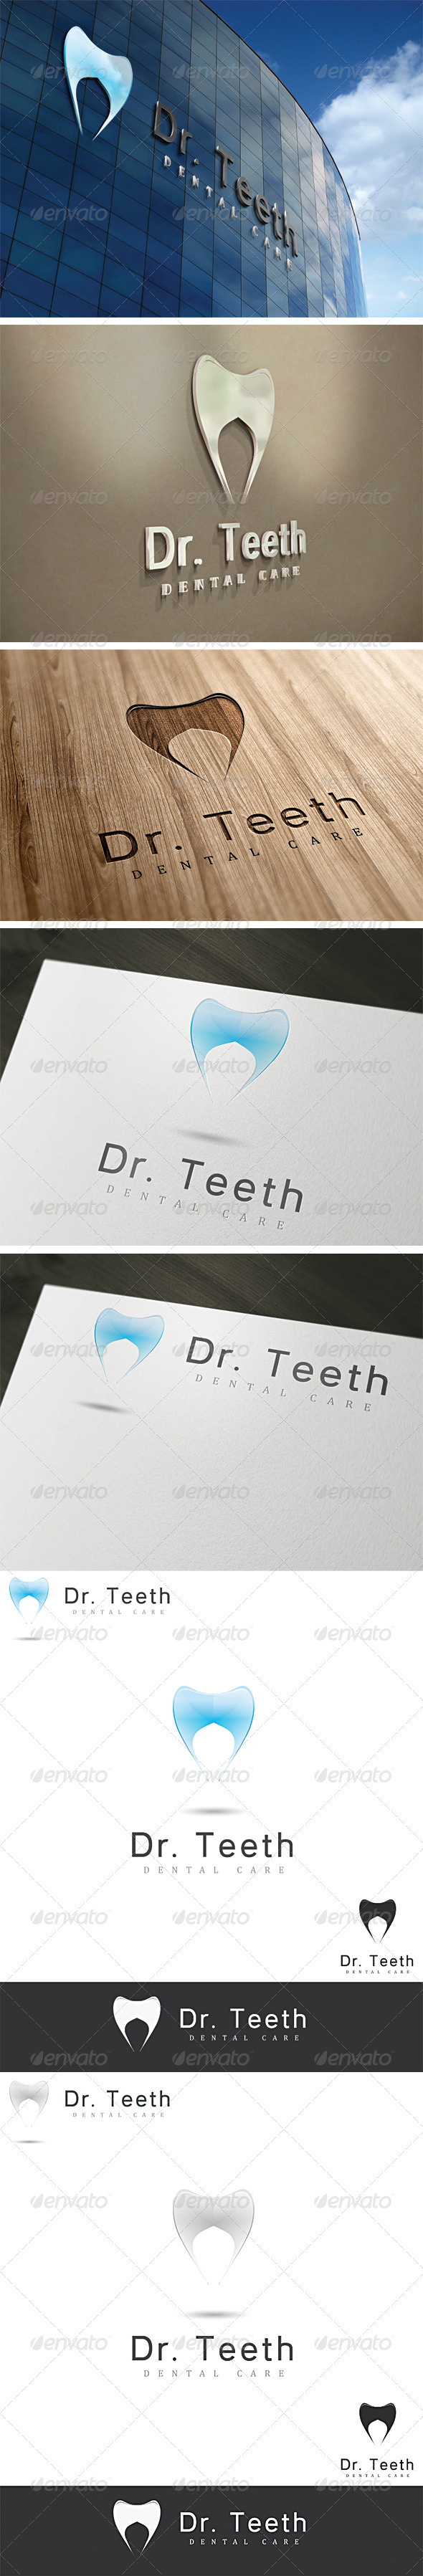 Dr. Teeth Dental Logo Template - Vector Abstract